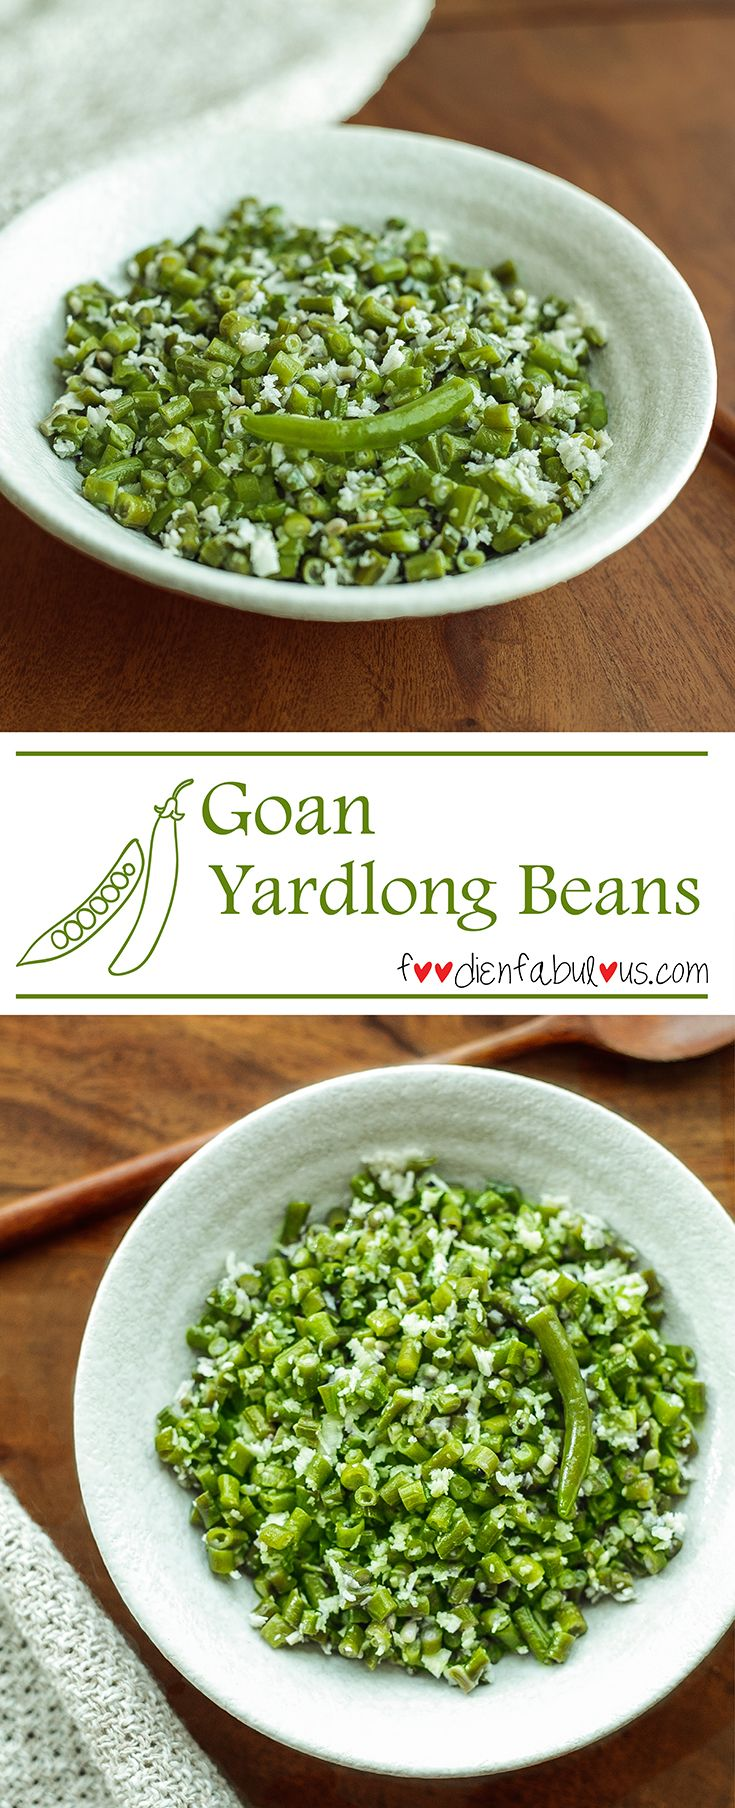 An easy recipe for the perfect side-dish to a staple Goan lunch of fish curry and rice. This is one of the best ways to enjoy the crunch and freshness of the yard long beans and the sweetness from fresh coconut when cooked simply.